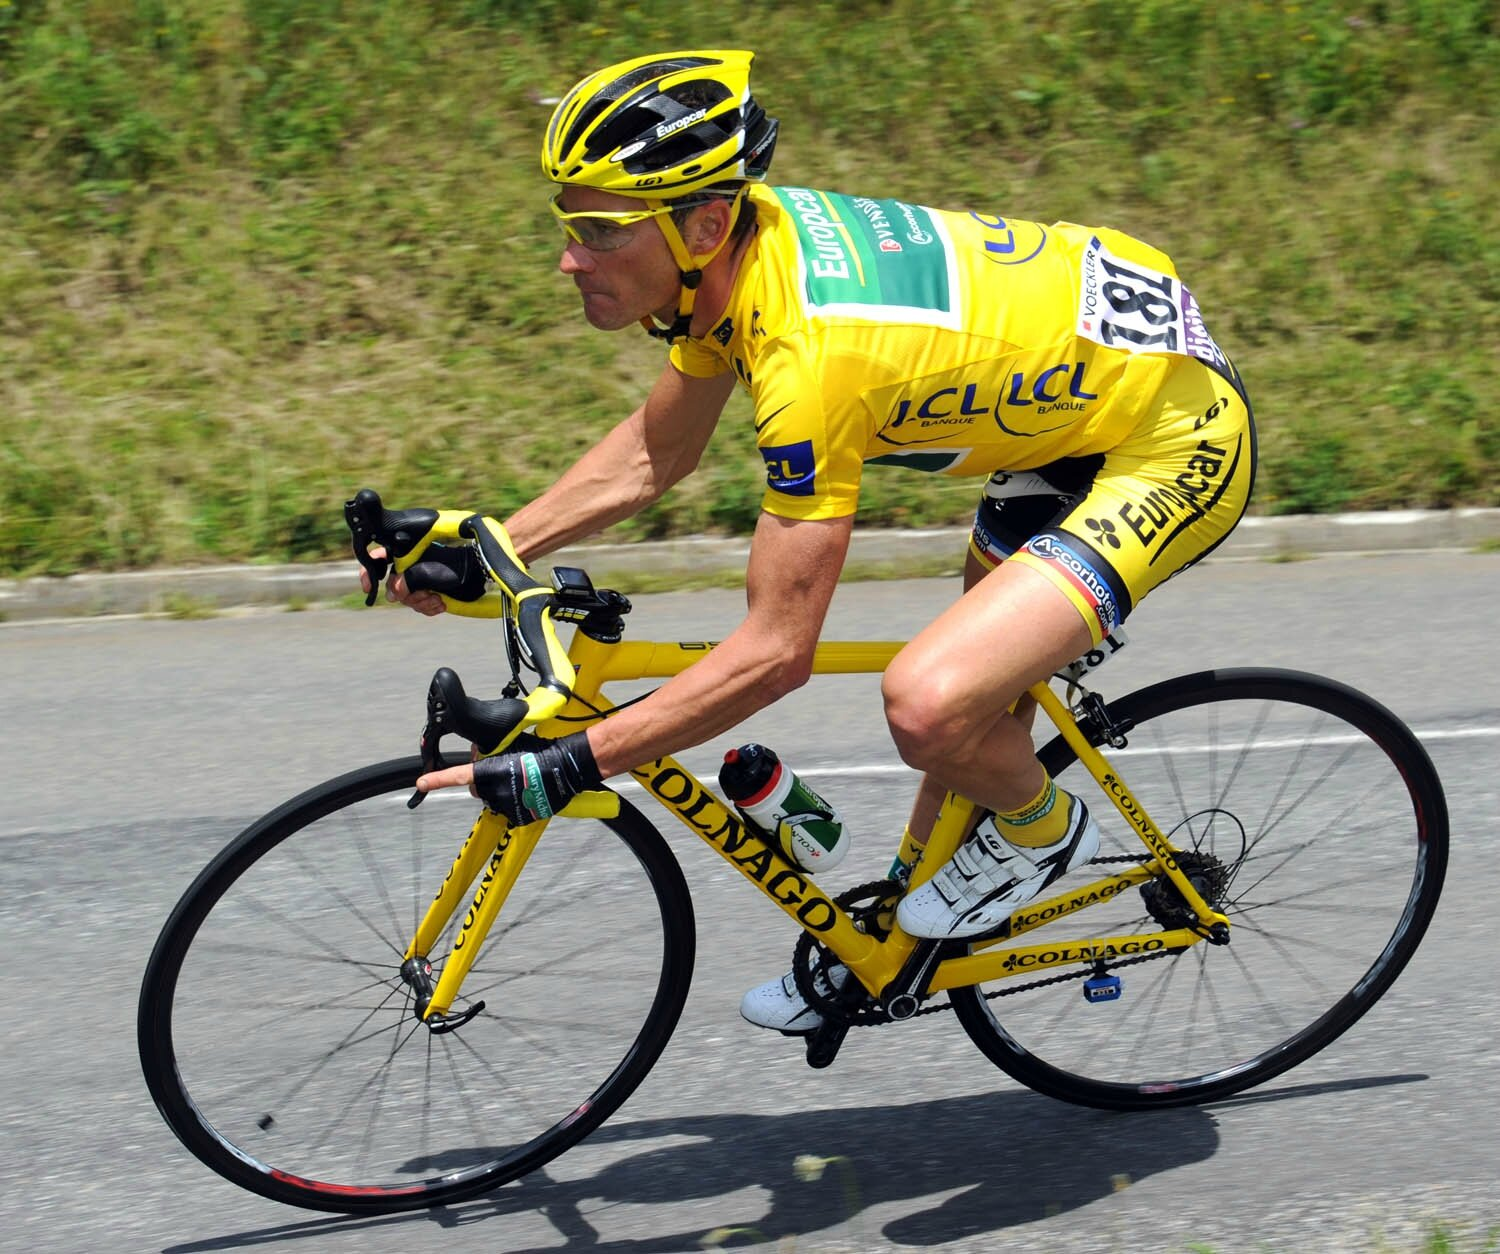 Le maillot jaune Tour de France 2011 de THOMAS VOECKLER ...